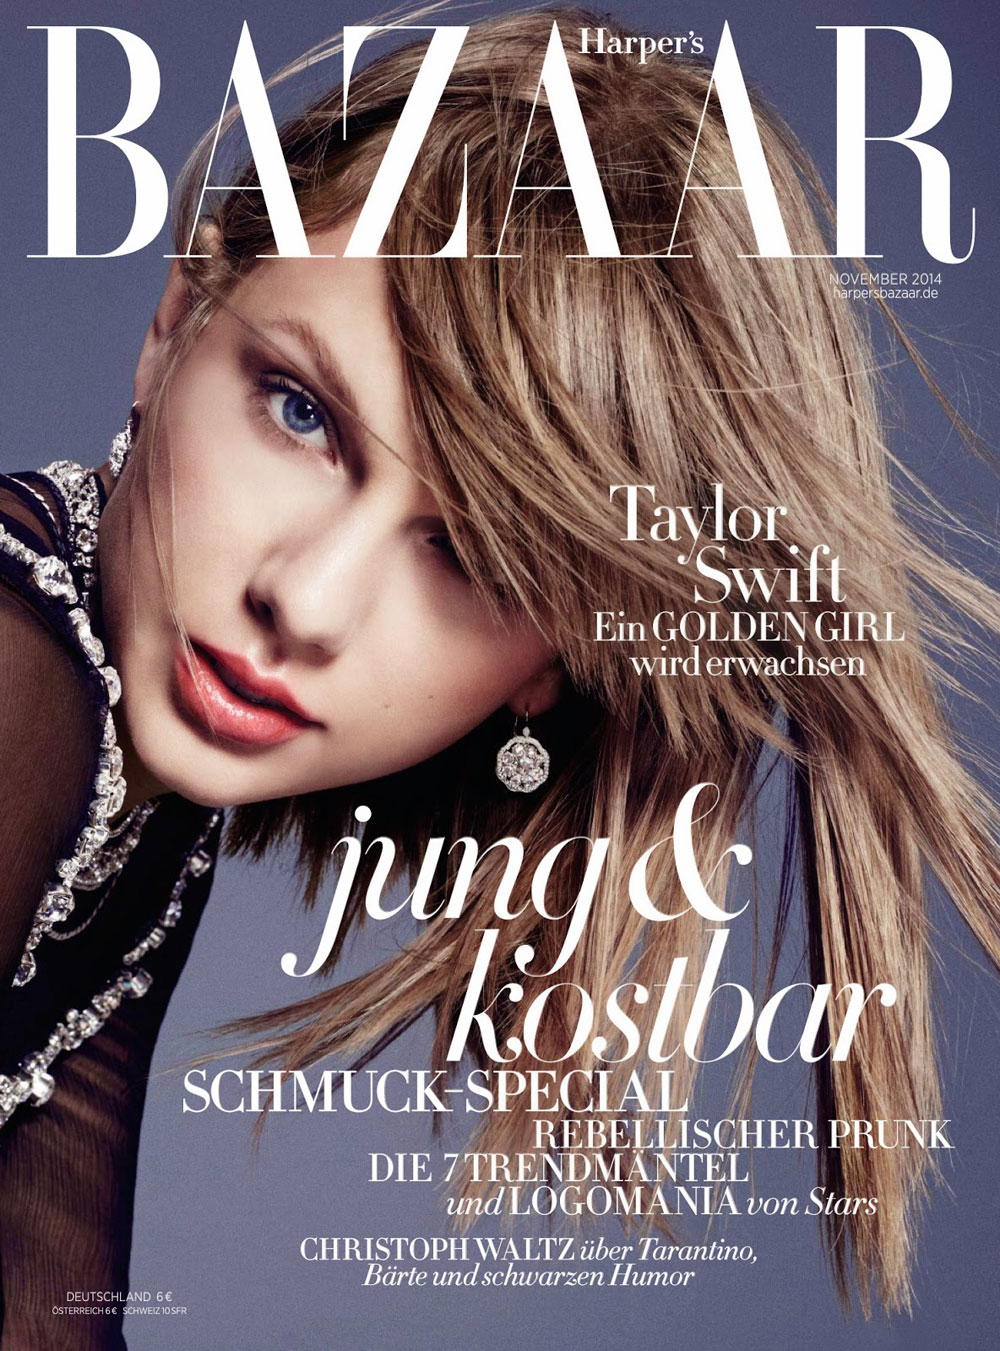 taylor-swift-harpers-bazaar-germany-deutschland-november-2014-issue-magazine-tom-lorenzo-site-tlo-1